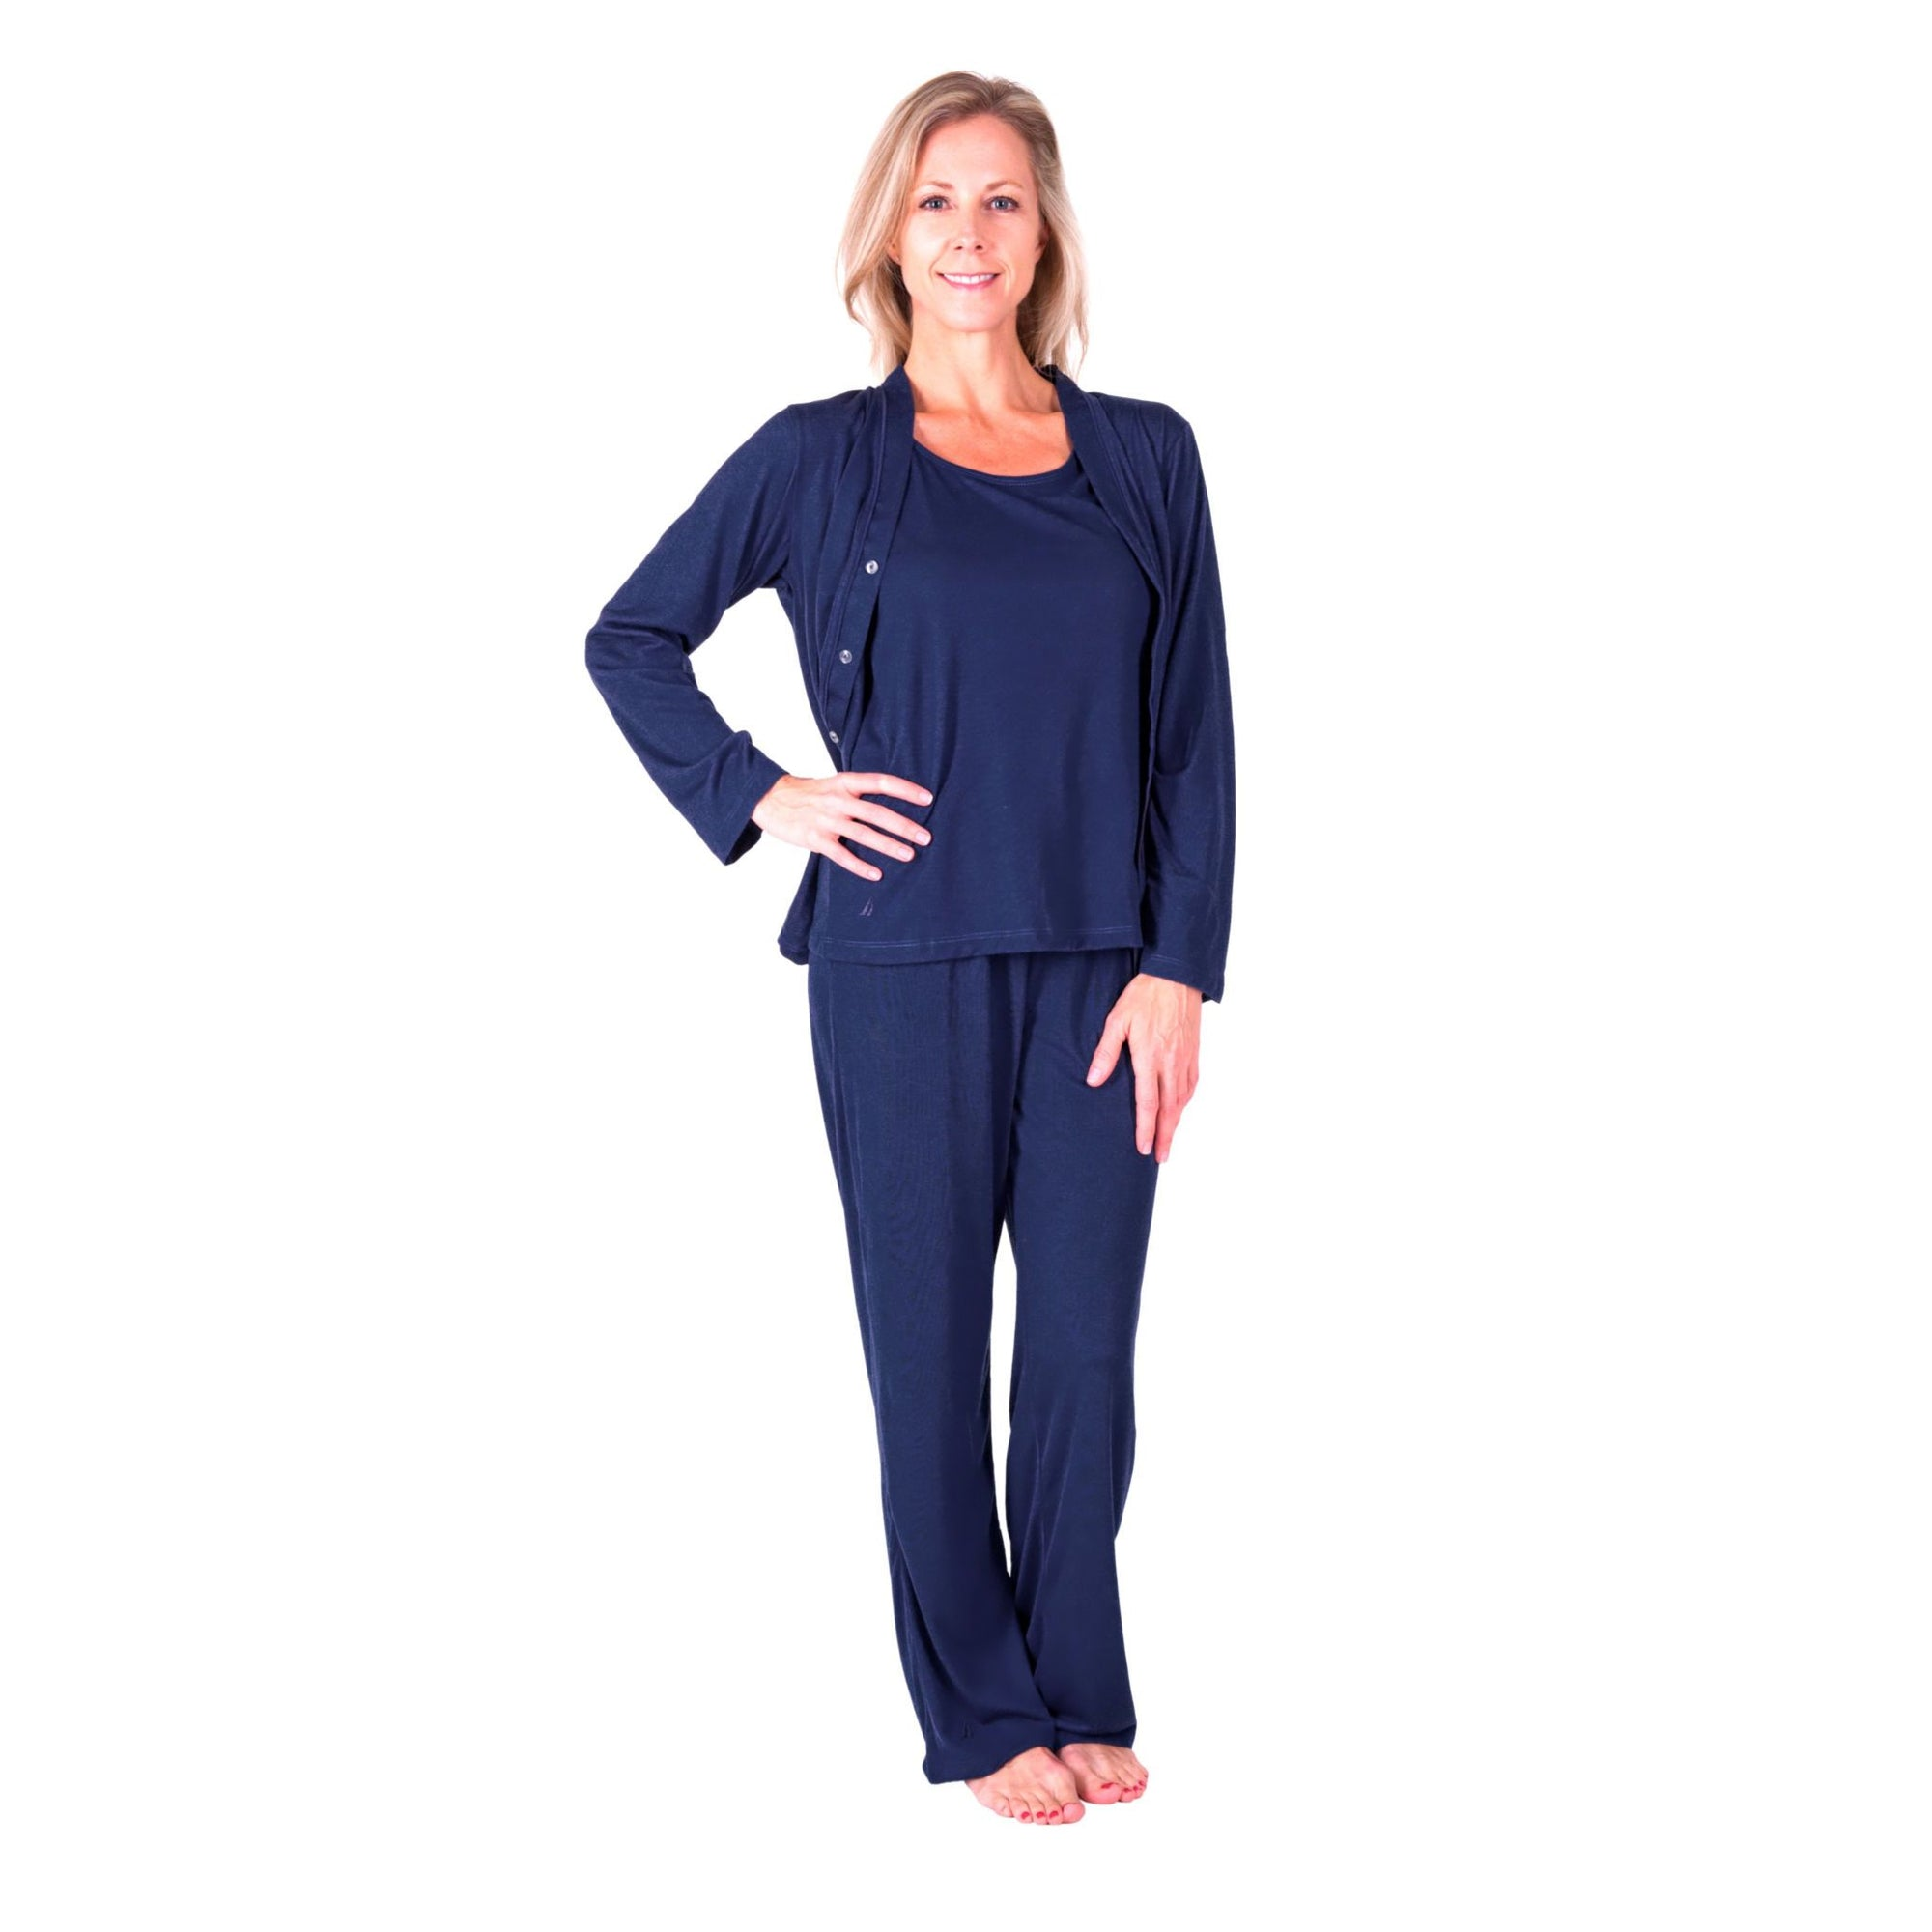 WOMEN'S MOISTURE WICKING 3-PIECE PAJAMA SET - Cool-jams